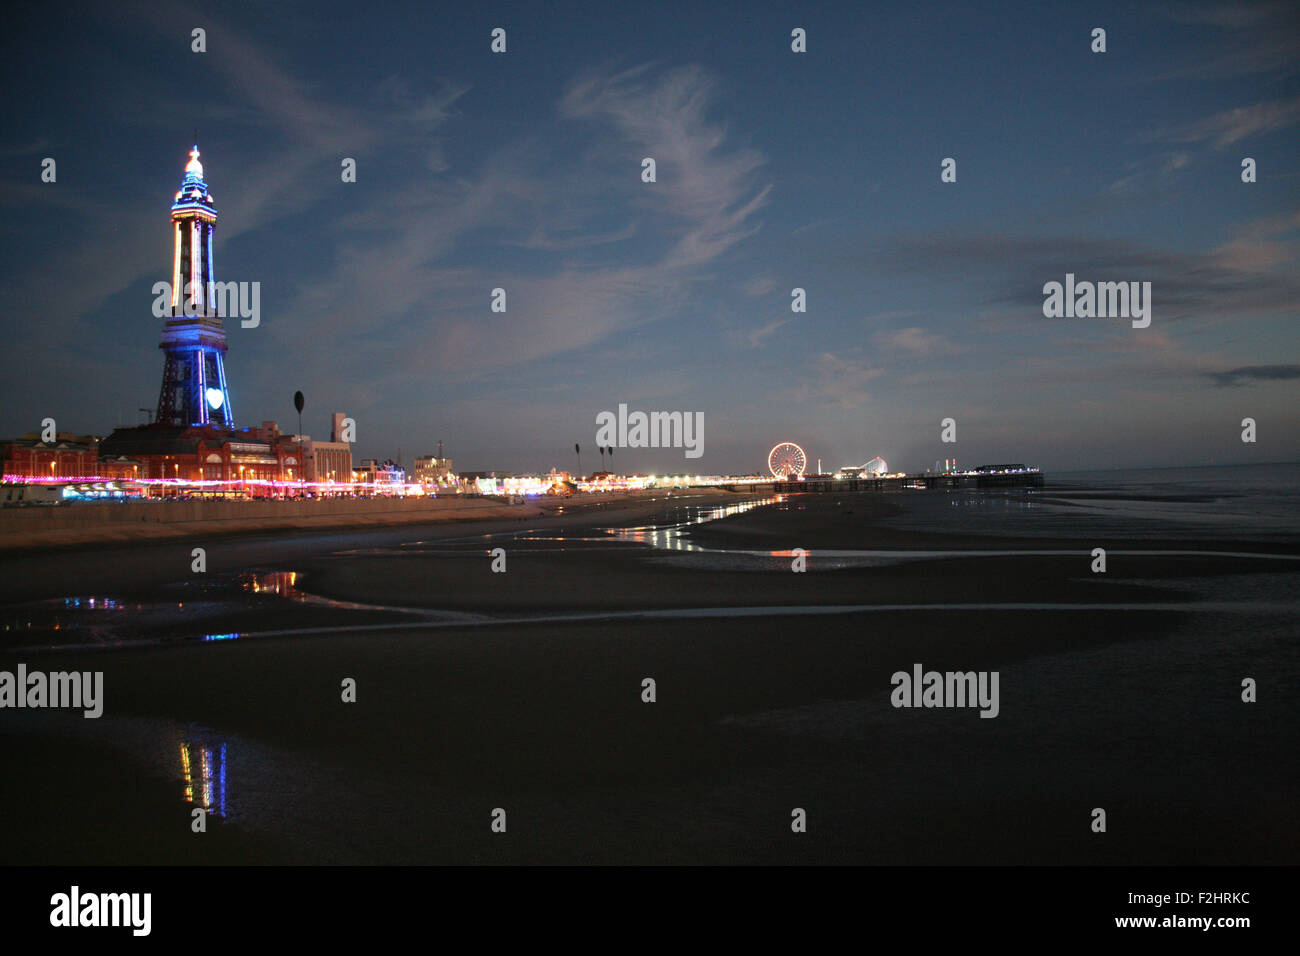 North Pier, Blackpool, UK. 19th September 2015. Blackpool Tower and the Promenade at Blackpool a wash with lights, - Stock Image